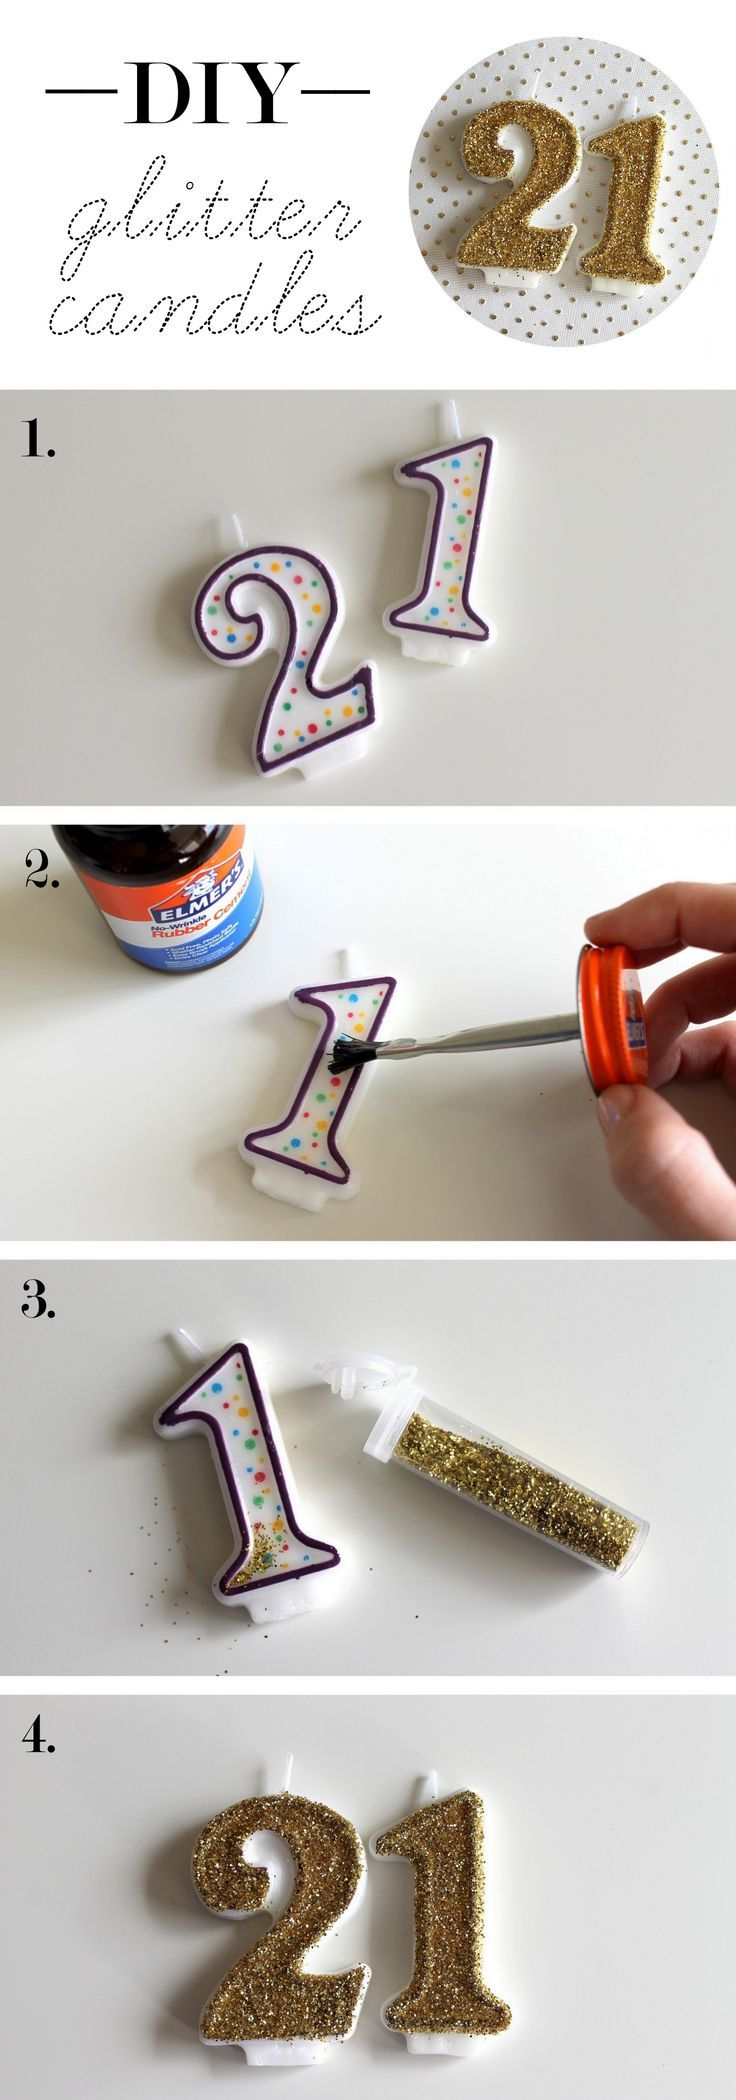 diy glitter candles #birthday #ideas